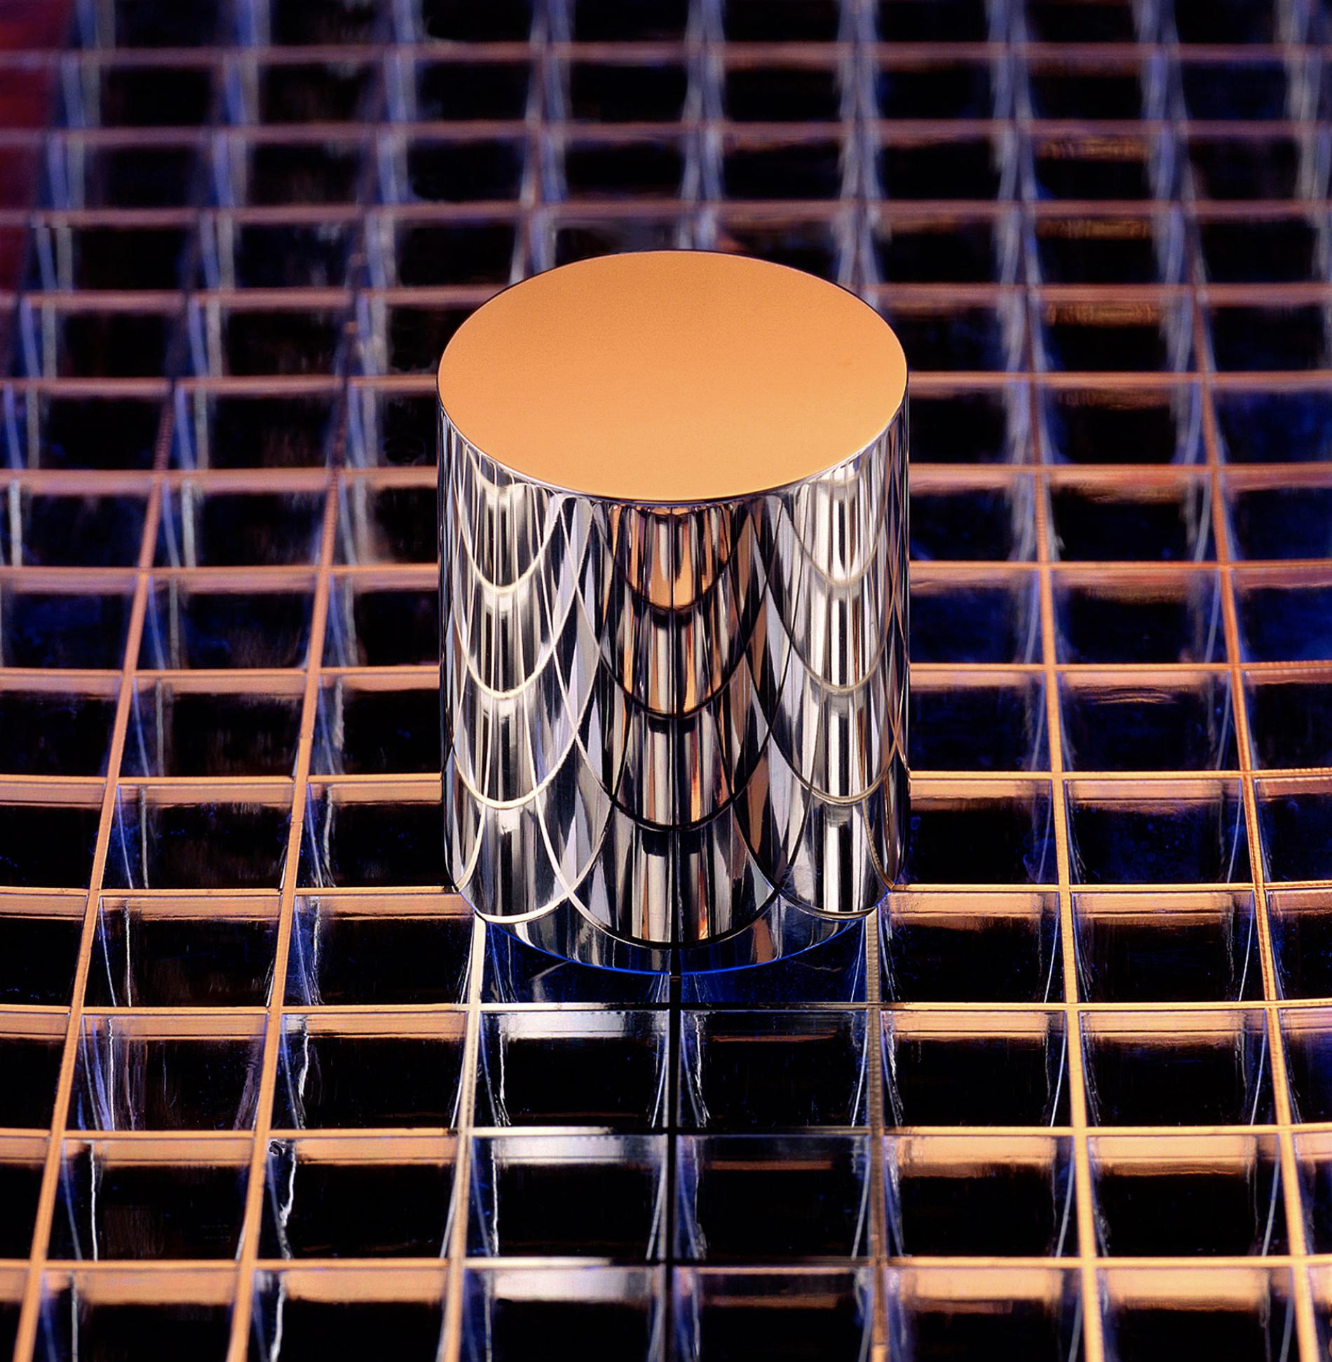 This cylinder is an exact replica of the International Prototype of the Kilogram, or IPK. Stored at the National Institute of Standards and Technology in Gaithersburg, Maryland, this particular copy is the basis for all weight calibrations in the United States.  PHOTOGRAPH BY ROBERT RATHE